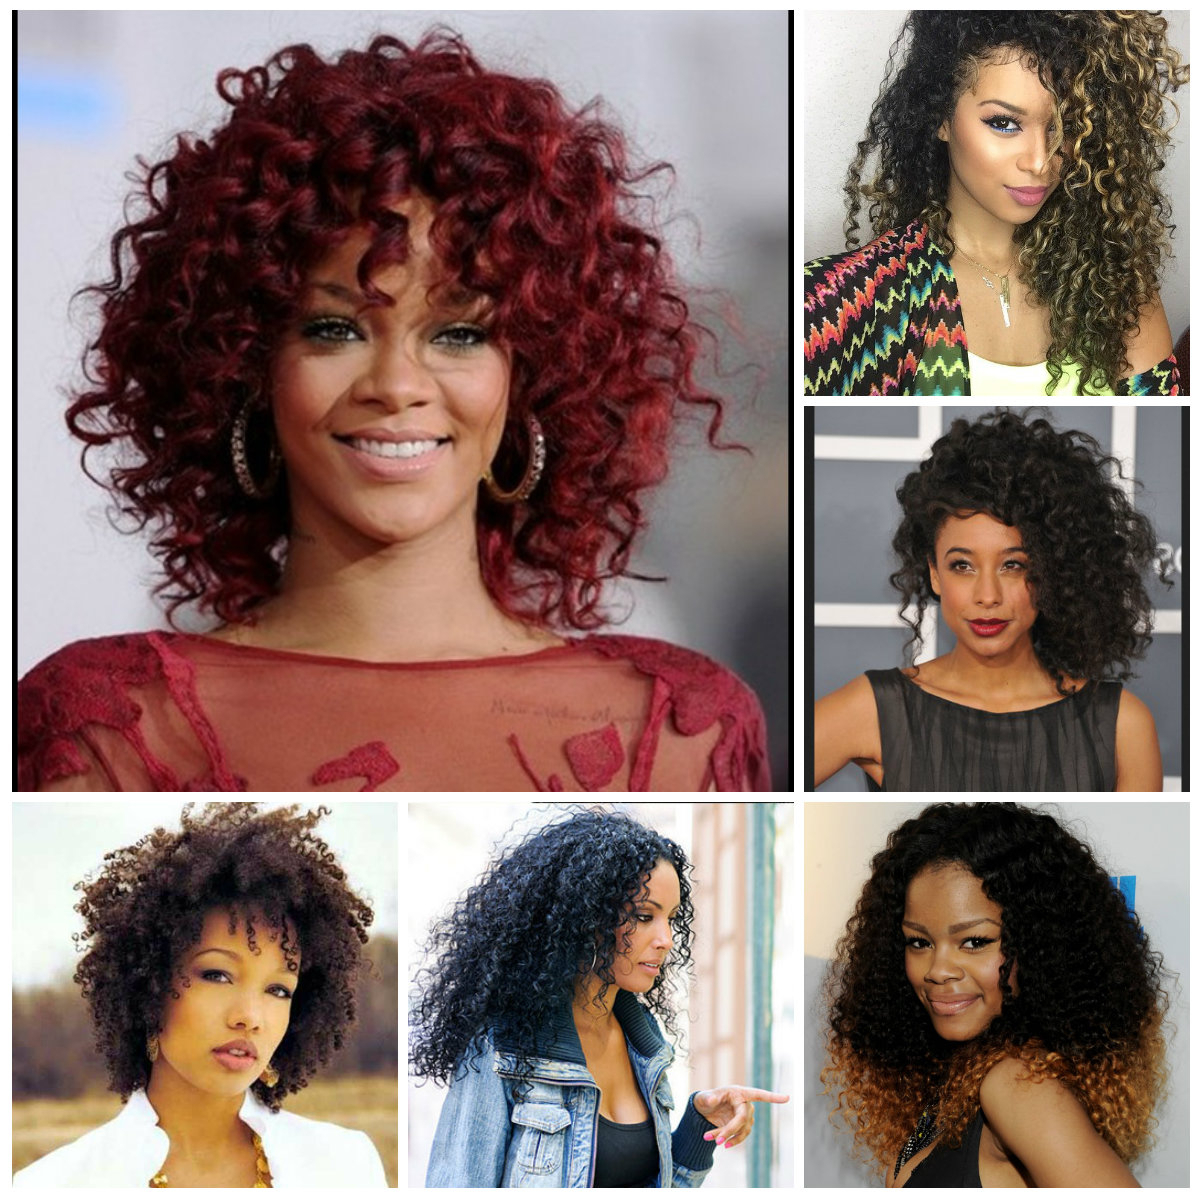 Hair Cuts : Drop Gorgeous Short Naturally Curly Hairstyles Ideas For Current Medium Haircuts For Naturally Curly Hair (View 11 of 20)